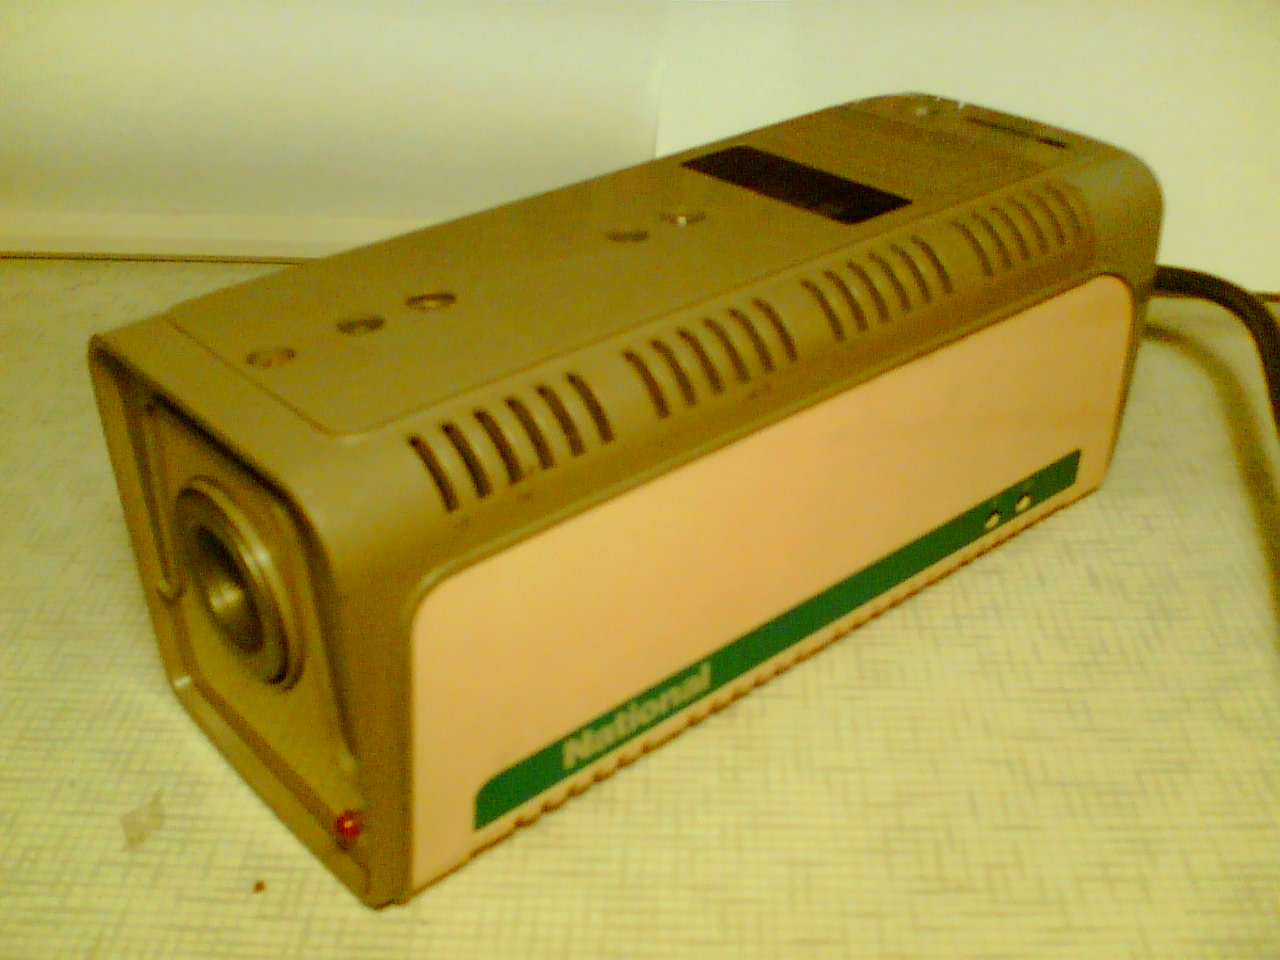 Kamera NATIONAL model WV-1000 E/C